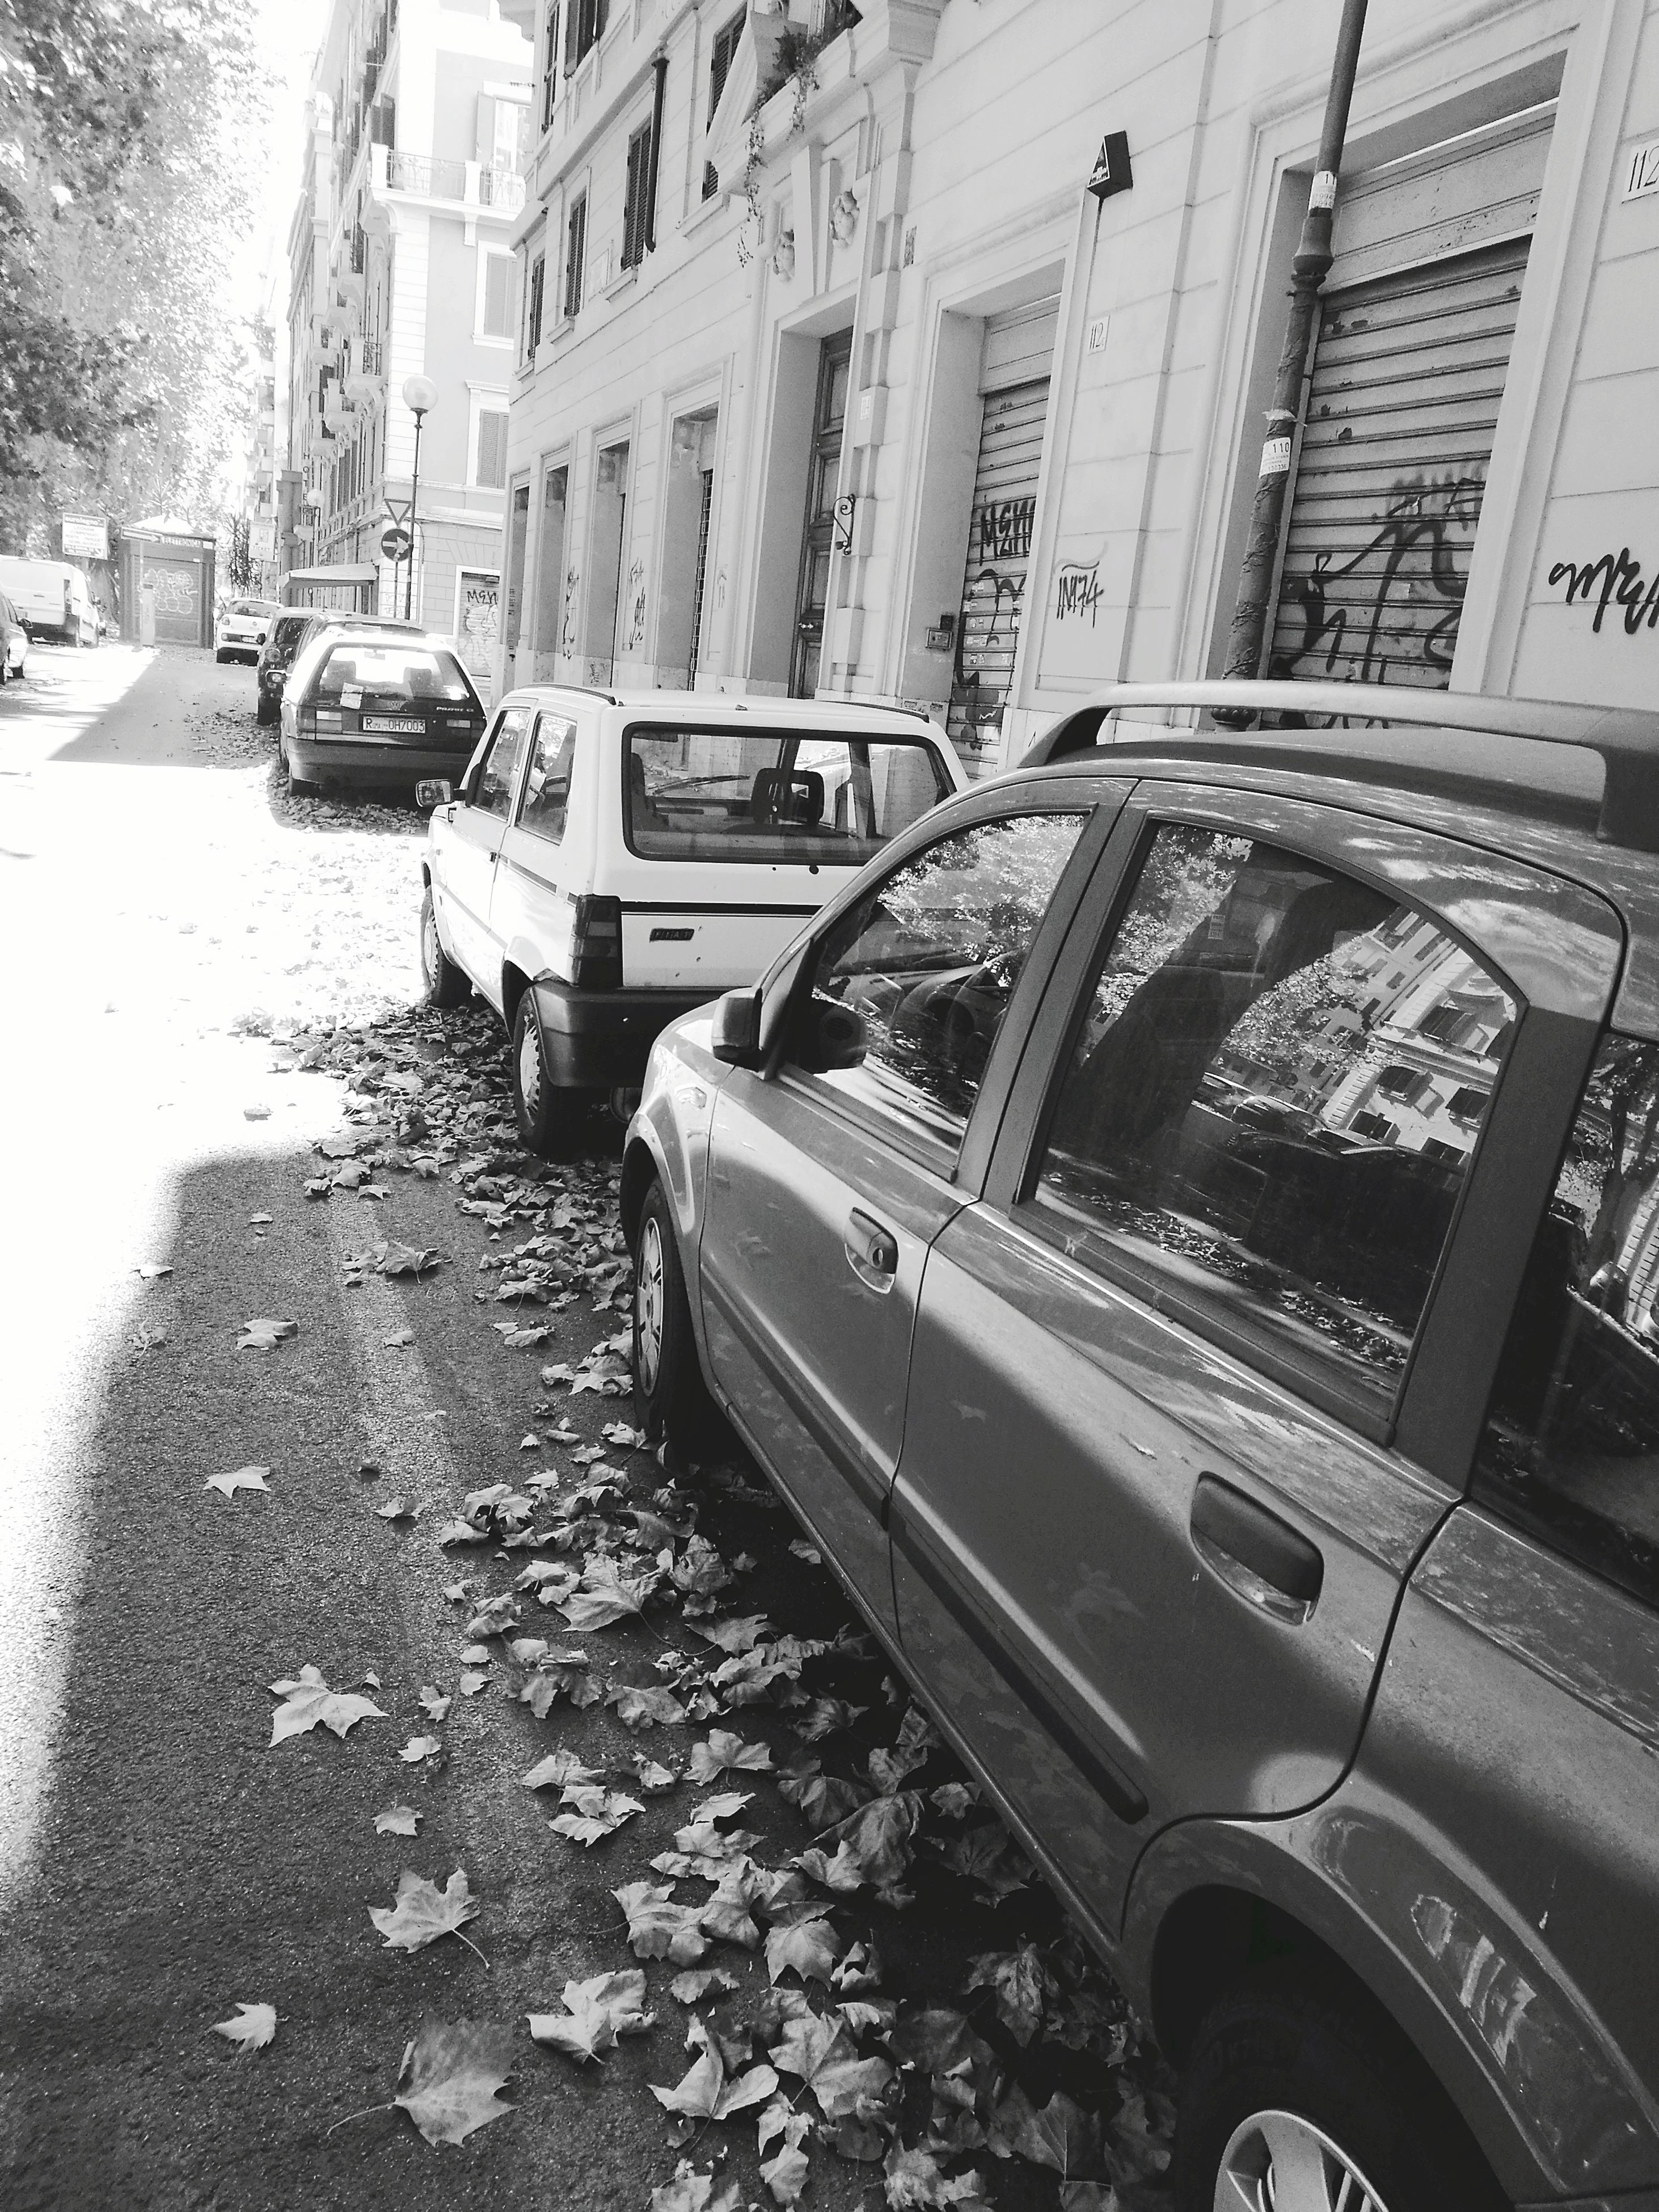 car, building exterior, built structure, land vehicle, architecture, transportation, mode of transport, day, street, leaf, outdoors, change, stationary, autumn, no people, nature, city